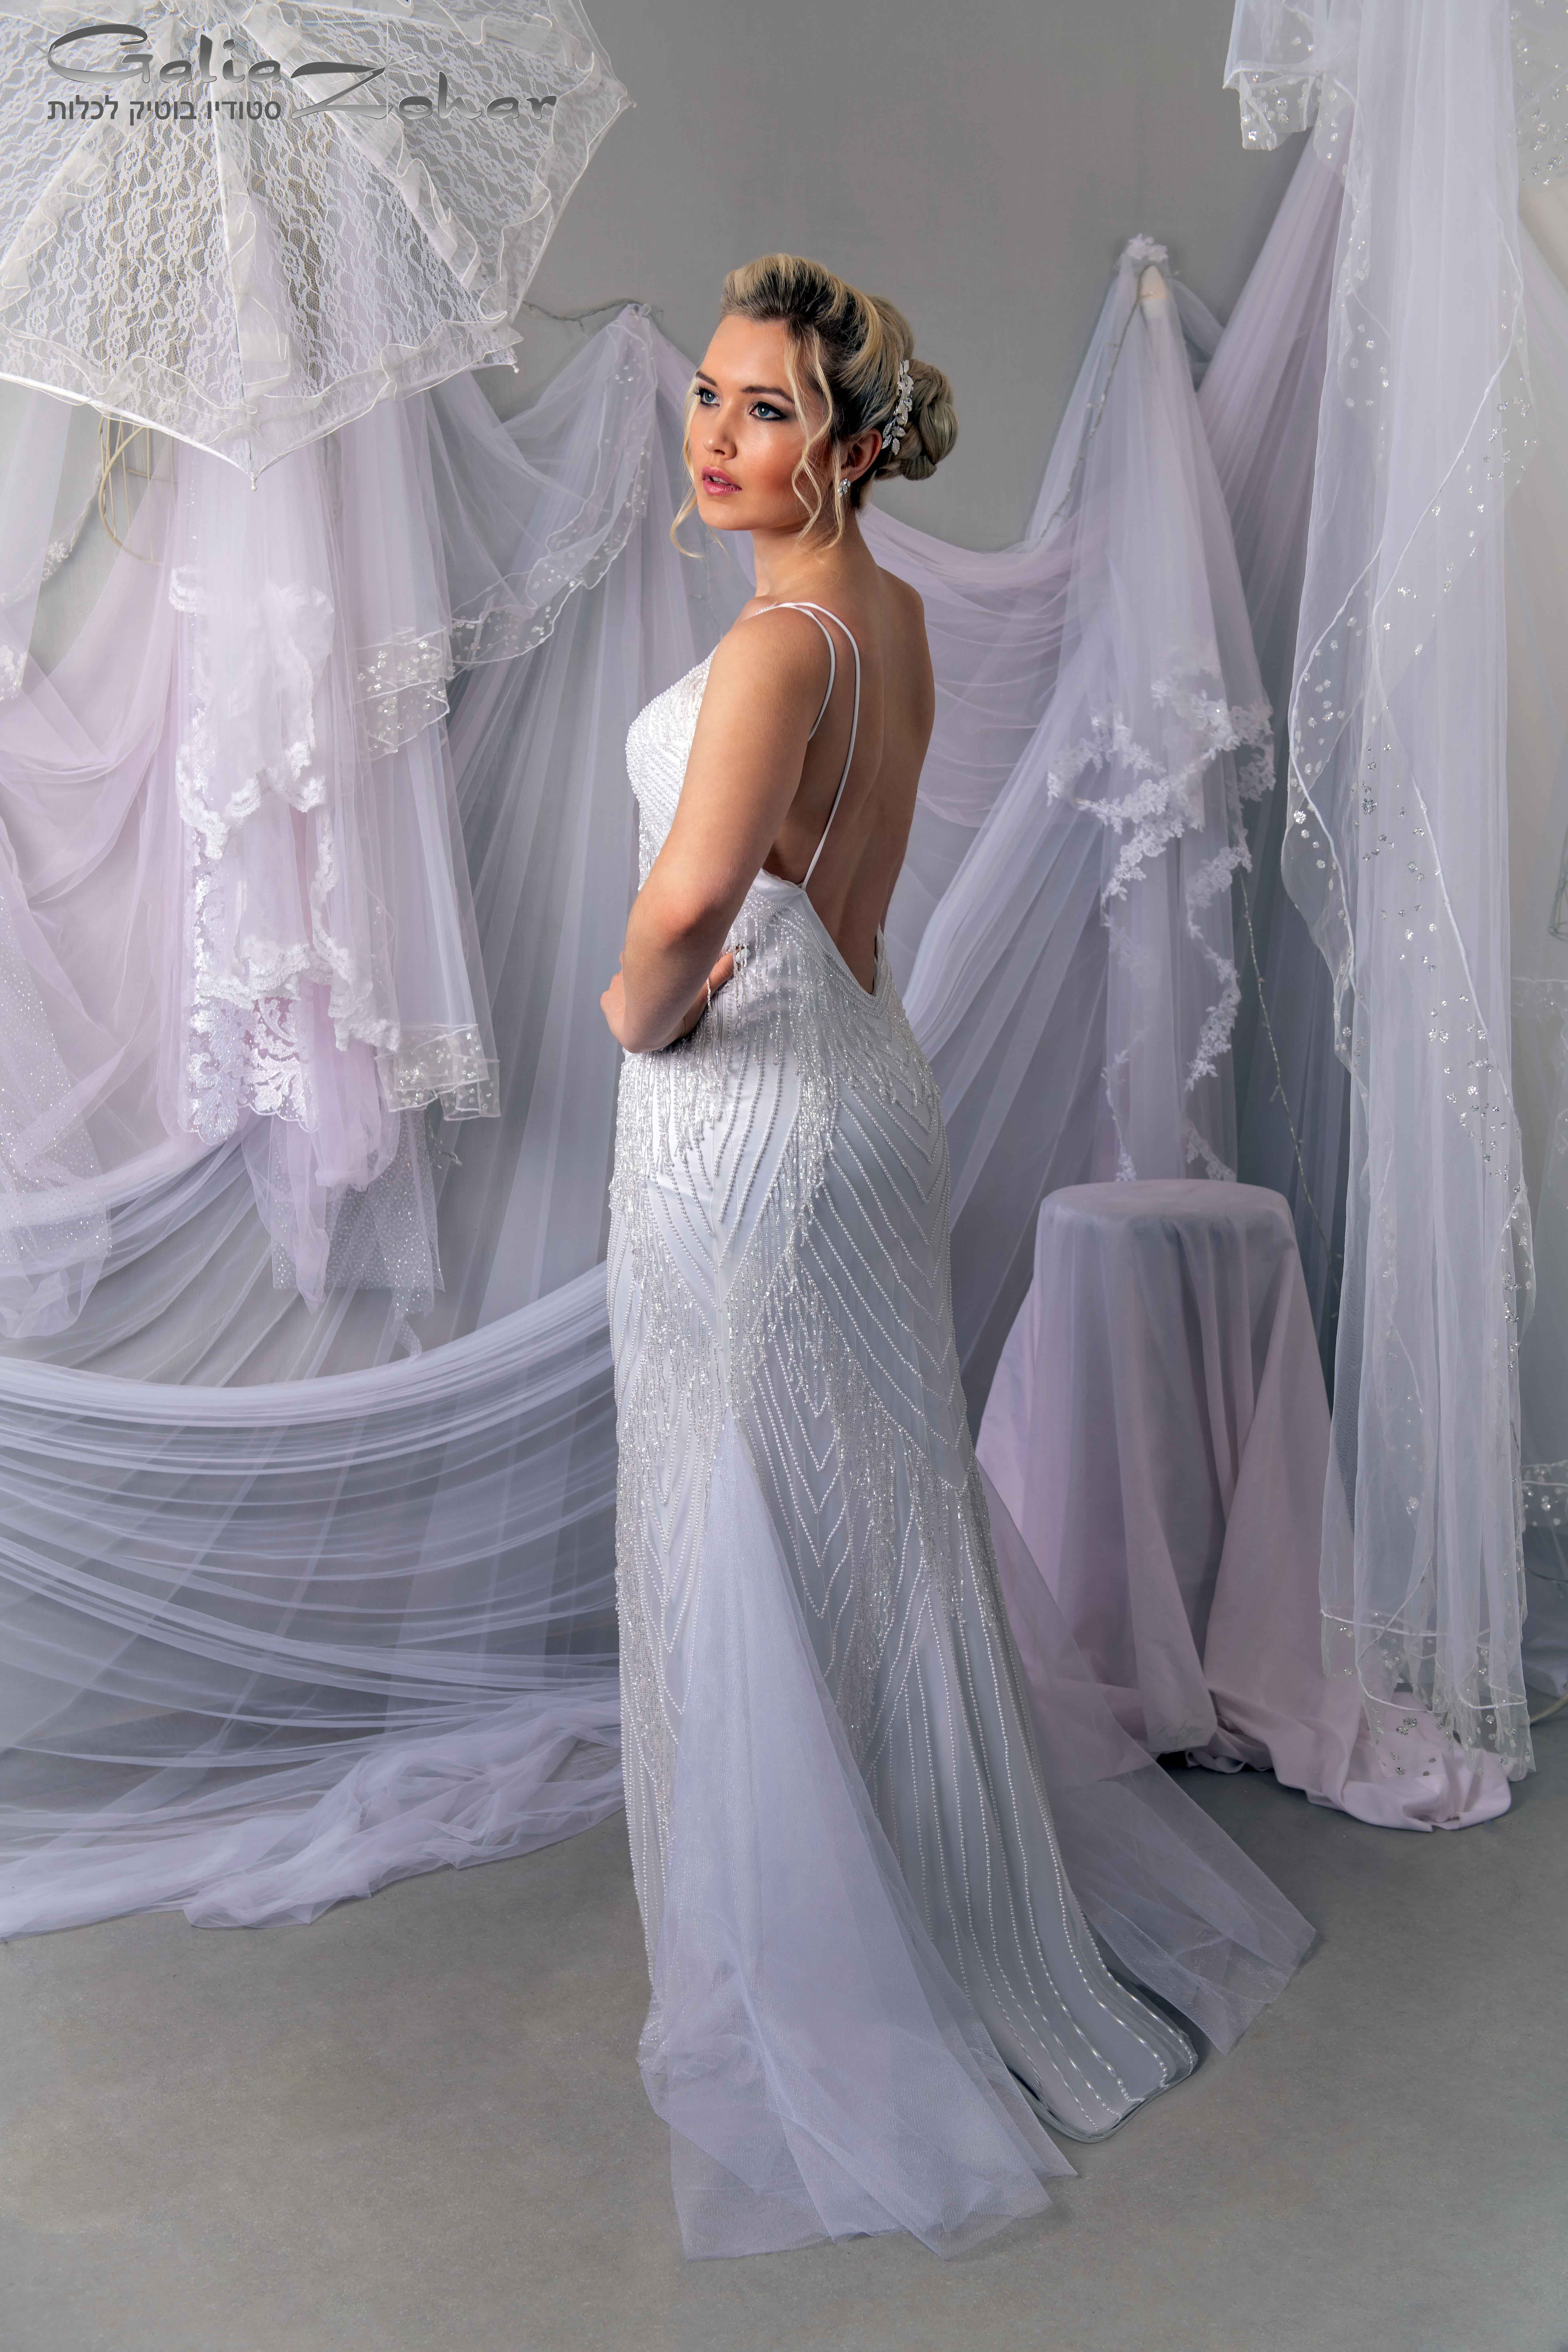 galia zohar weddingdress 11